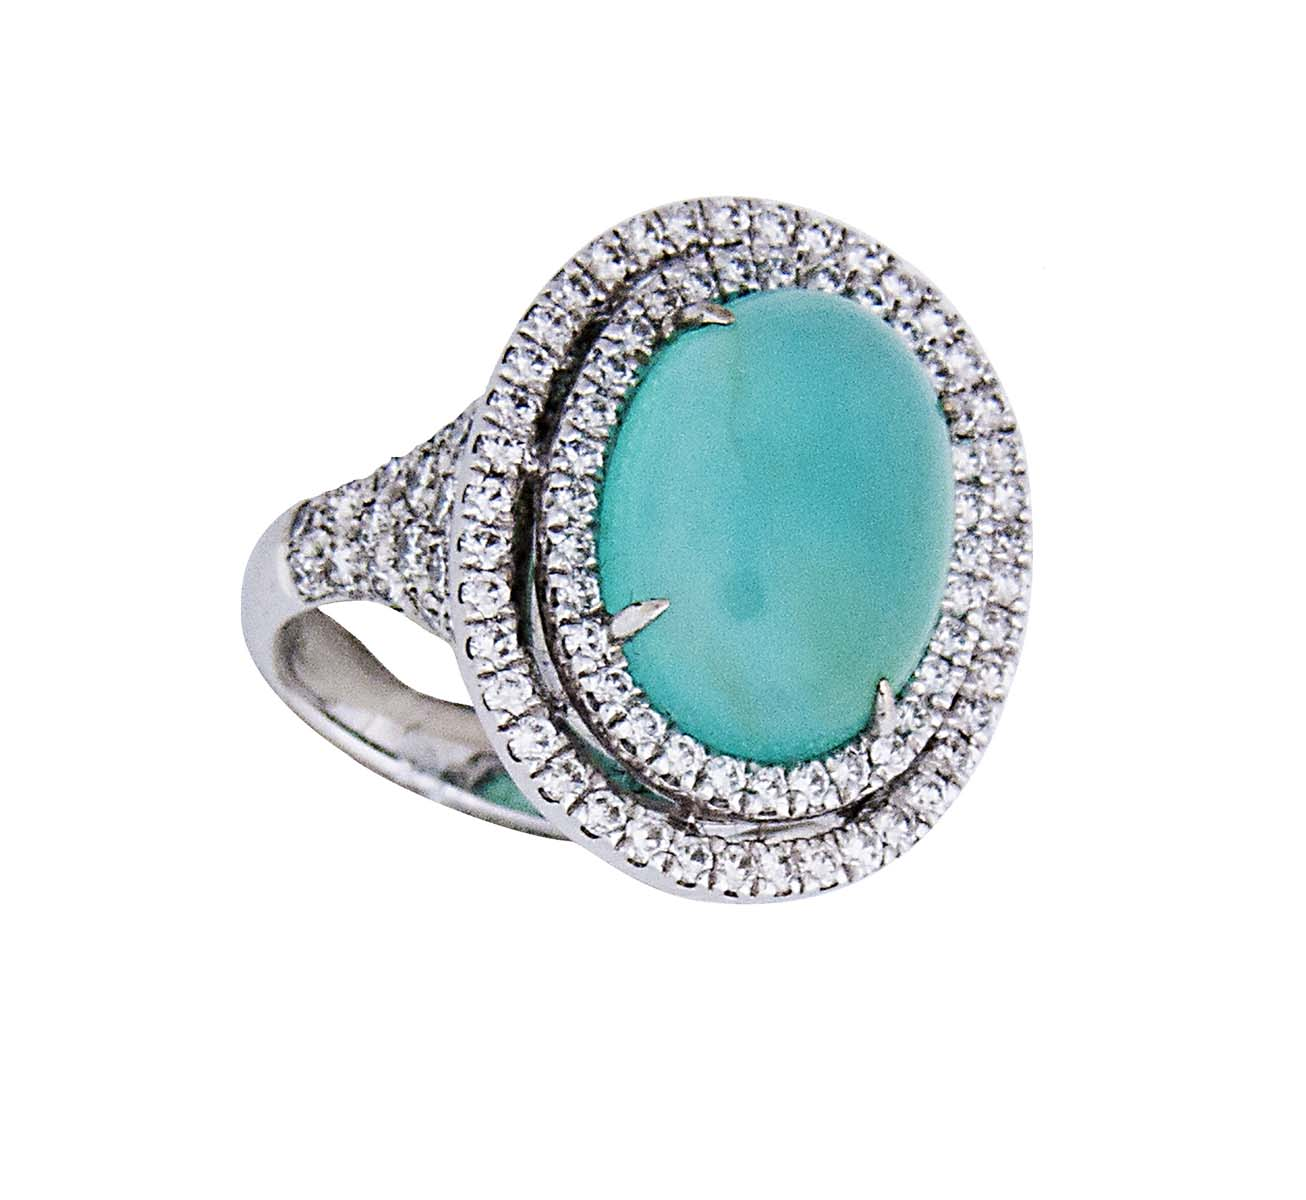 18k Peruvian Opal and diamond cocktail ring